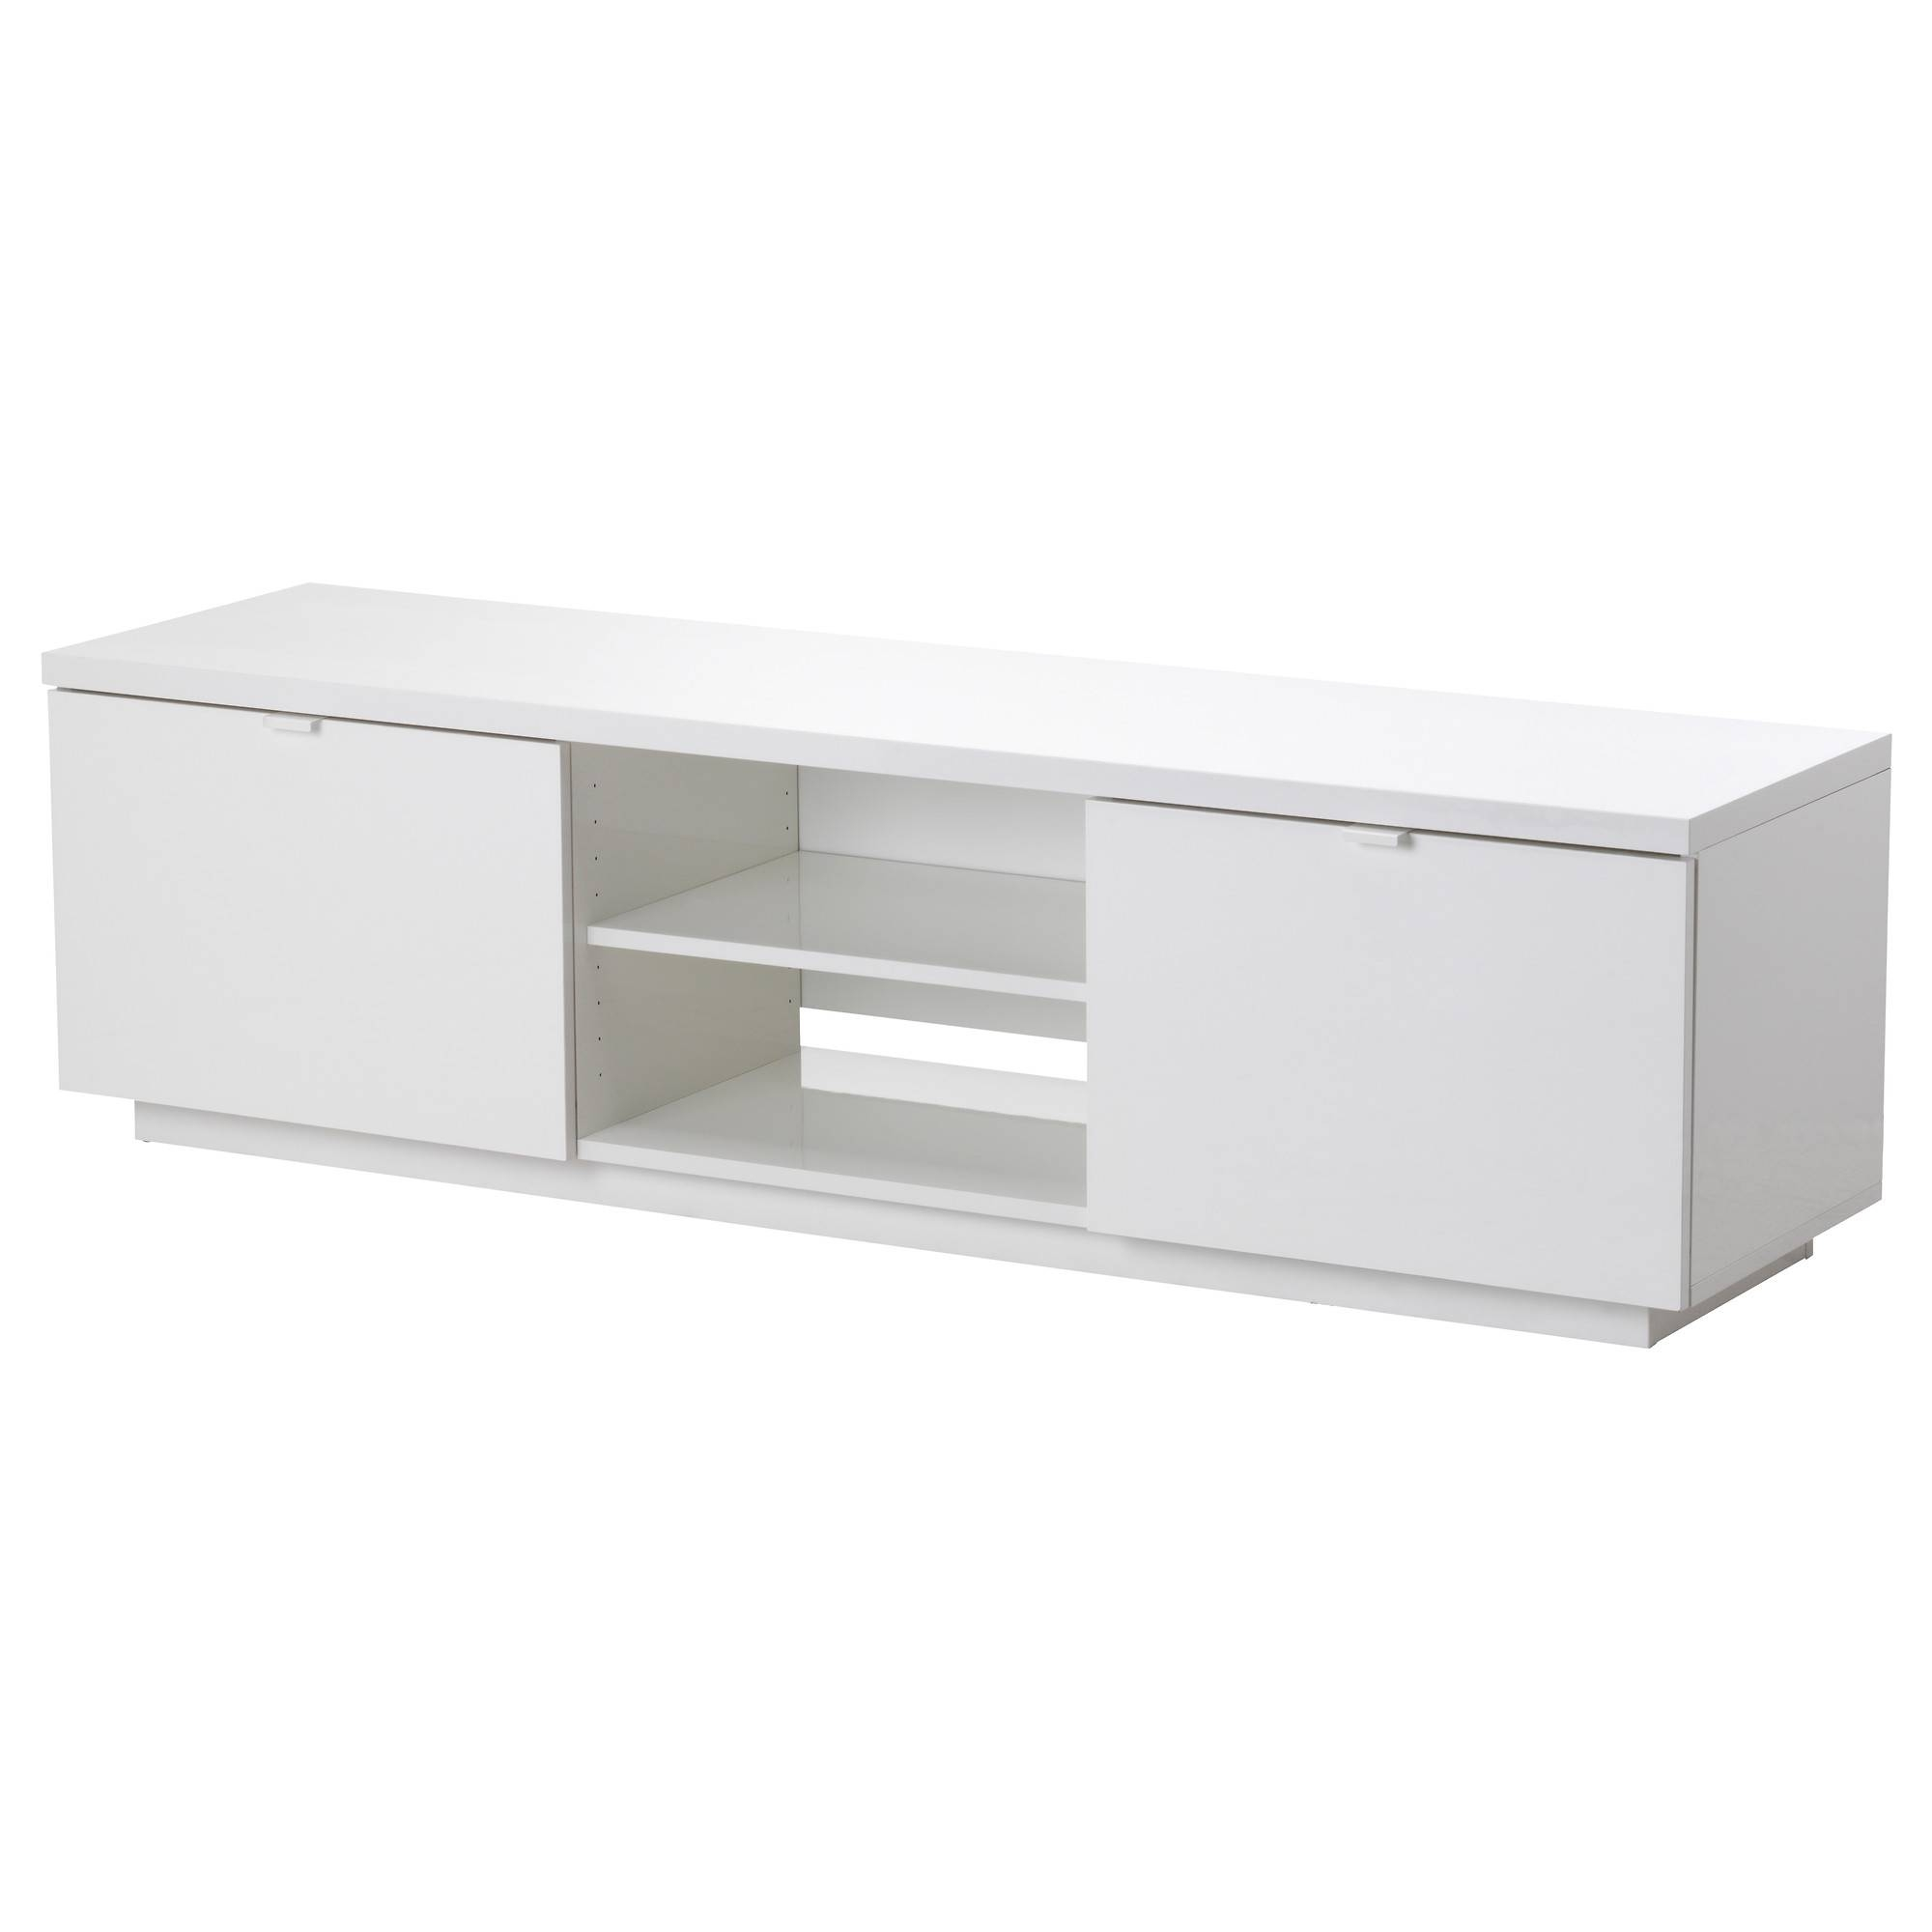 Byås Tv Unit - Ikea intended for White High Gloss Tv Stands (Image 4 of 15)